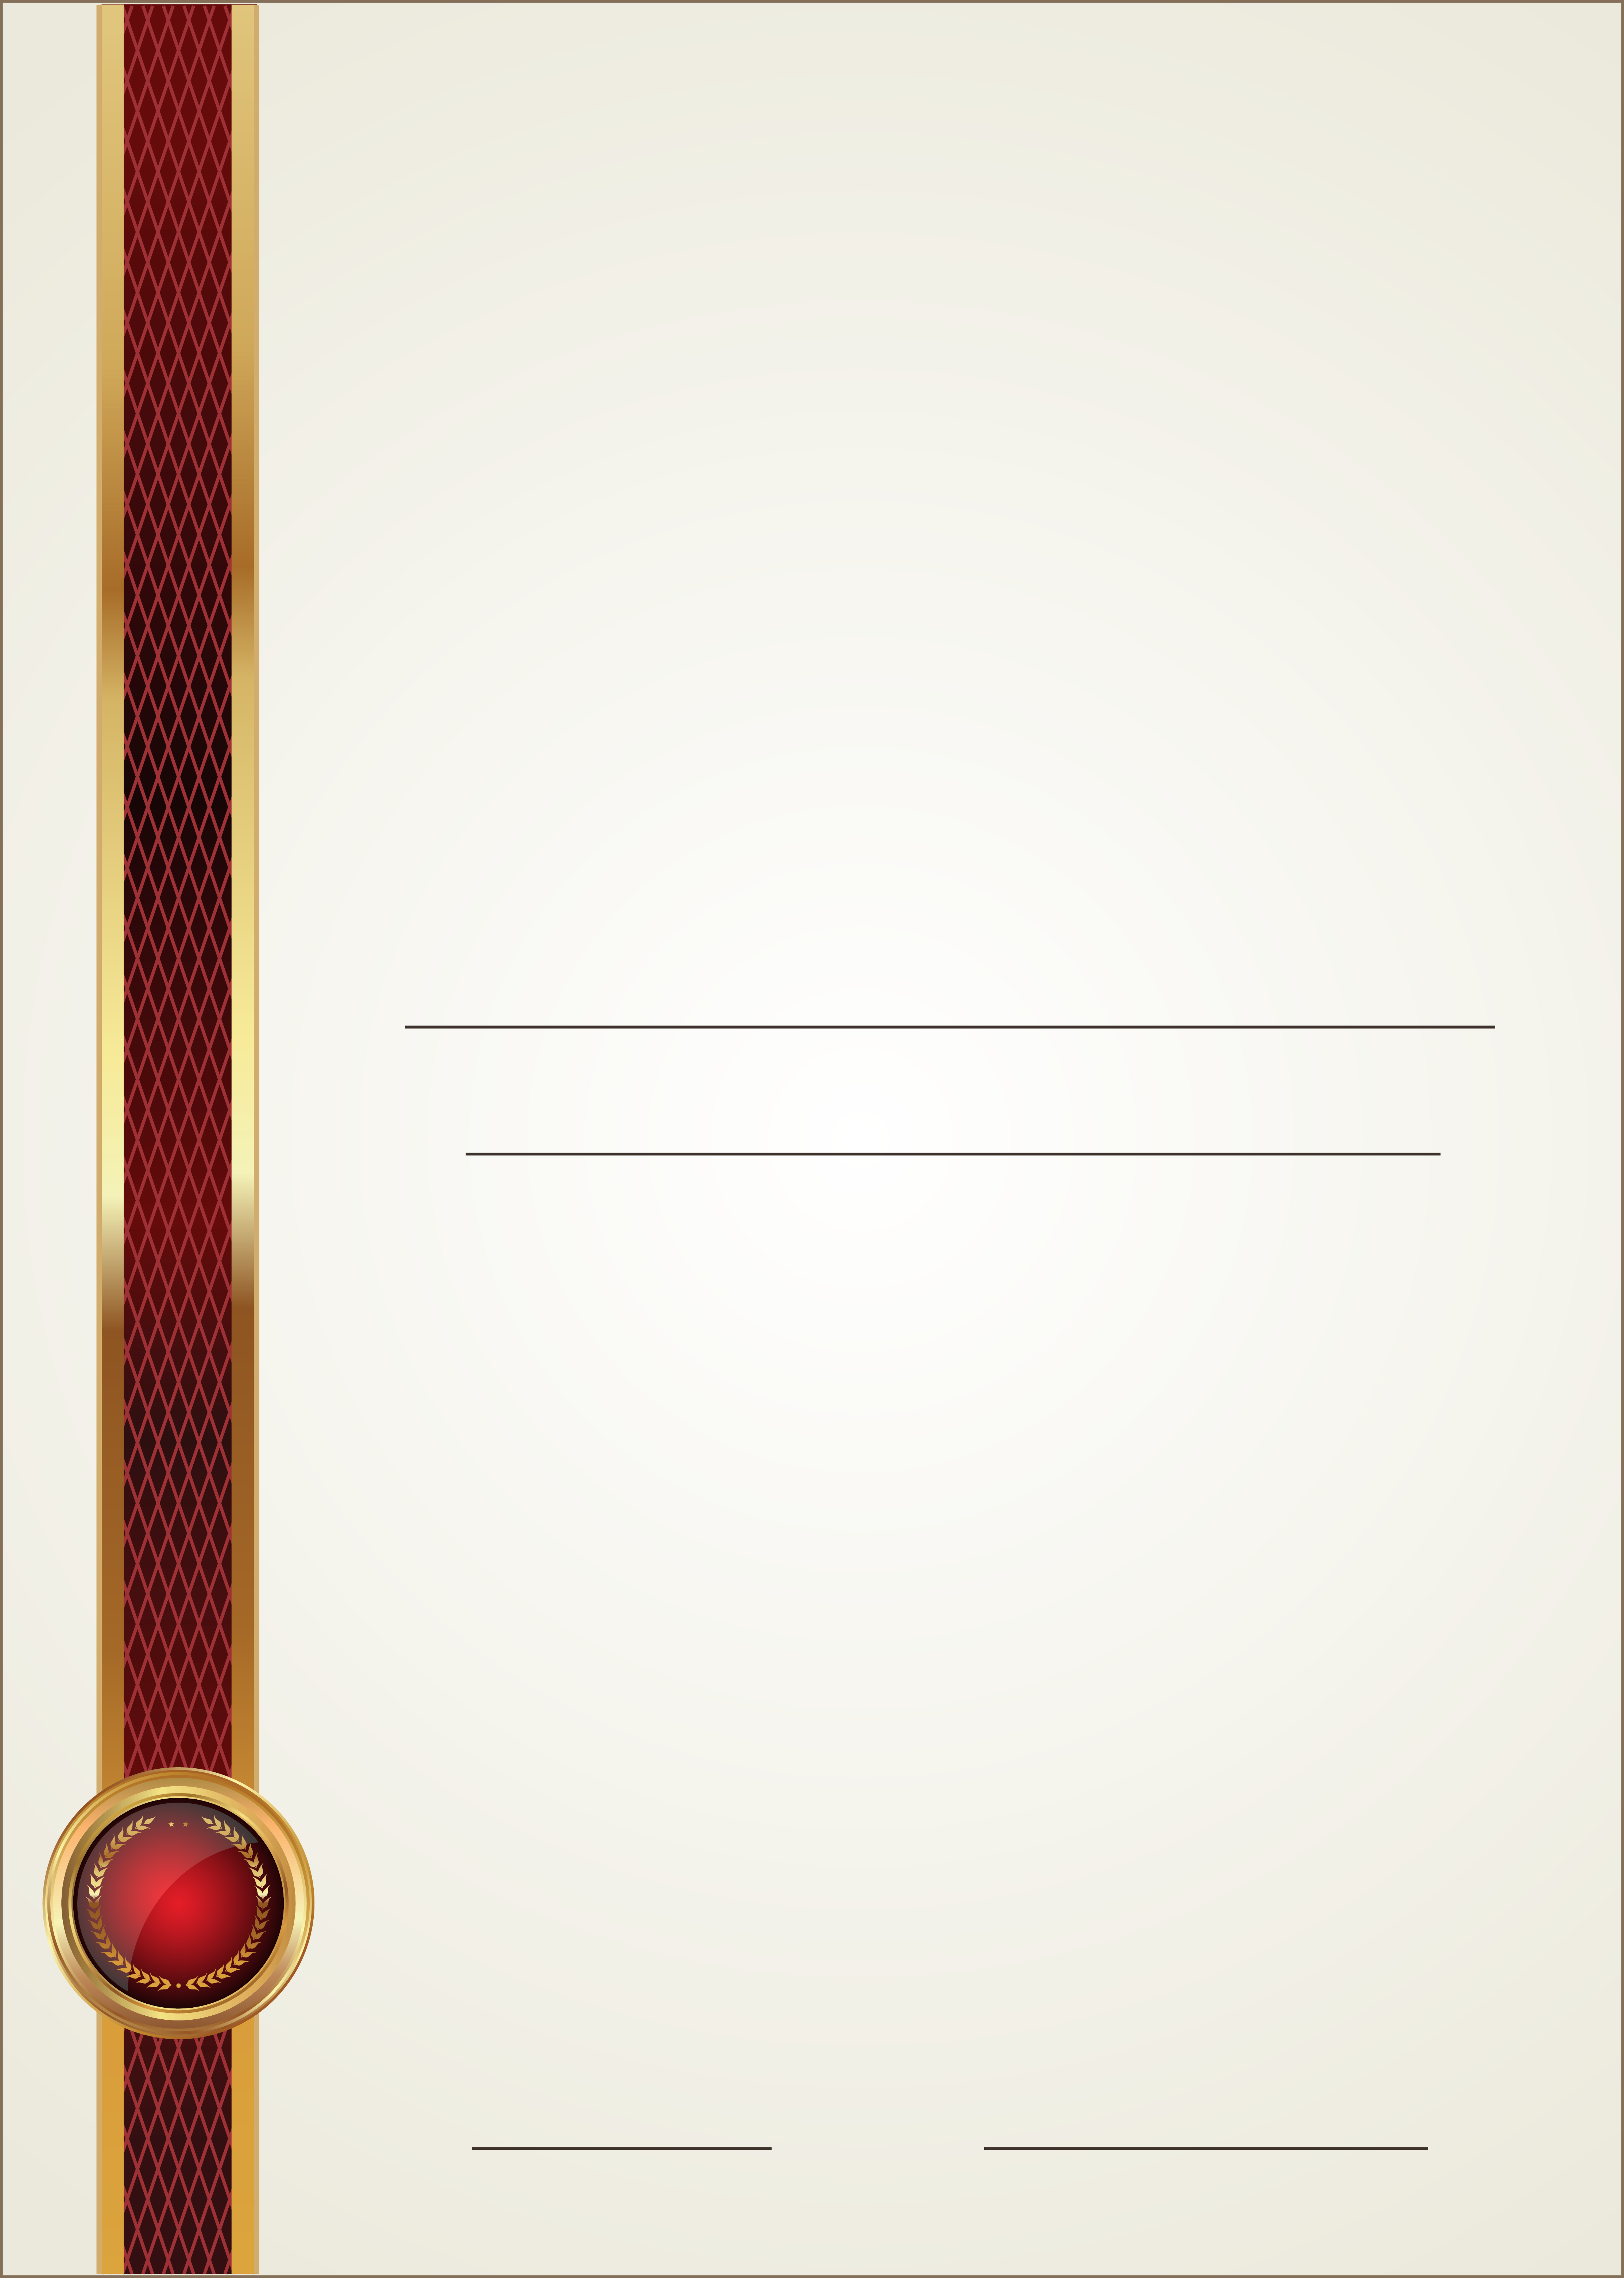 Empty Template Blank PNG Image.